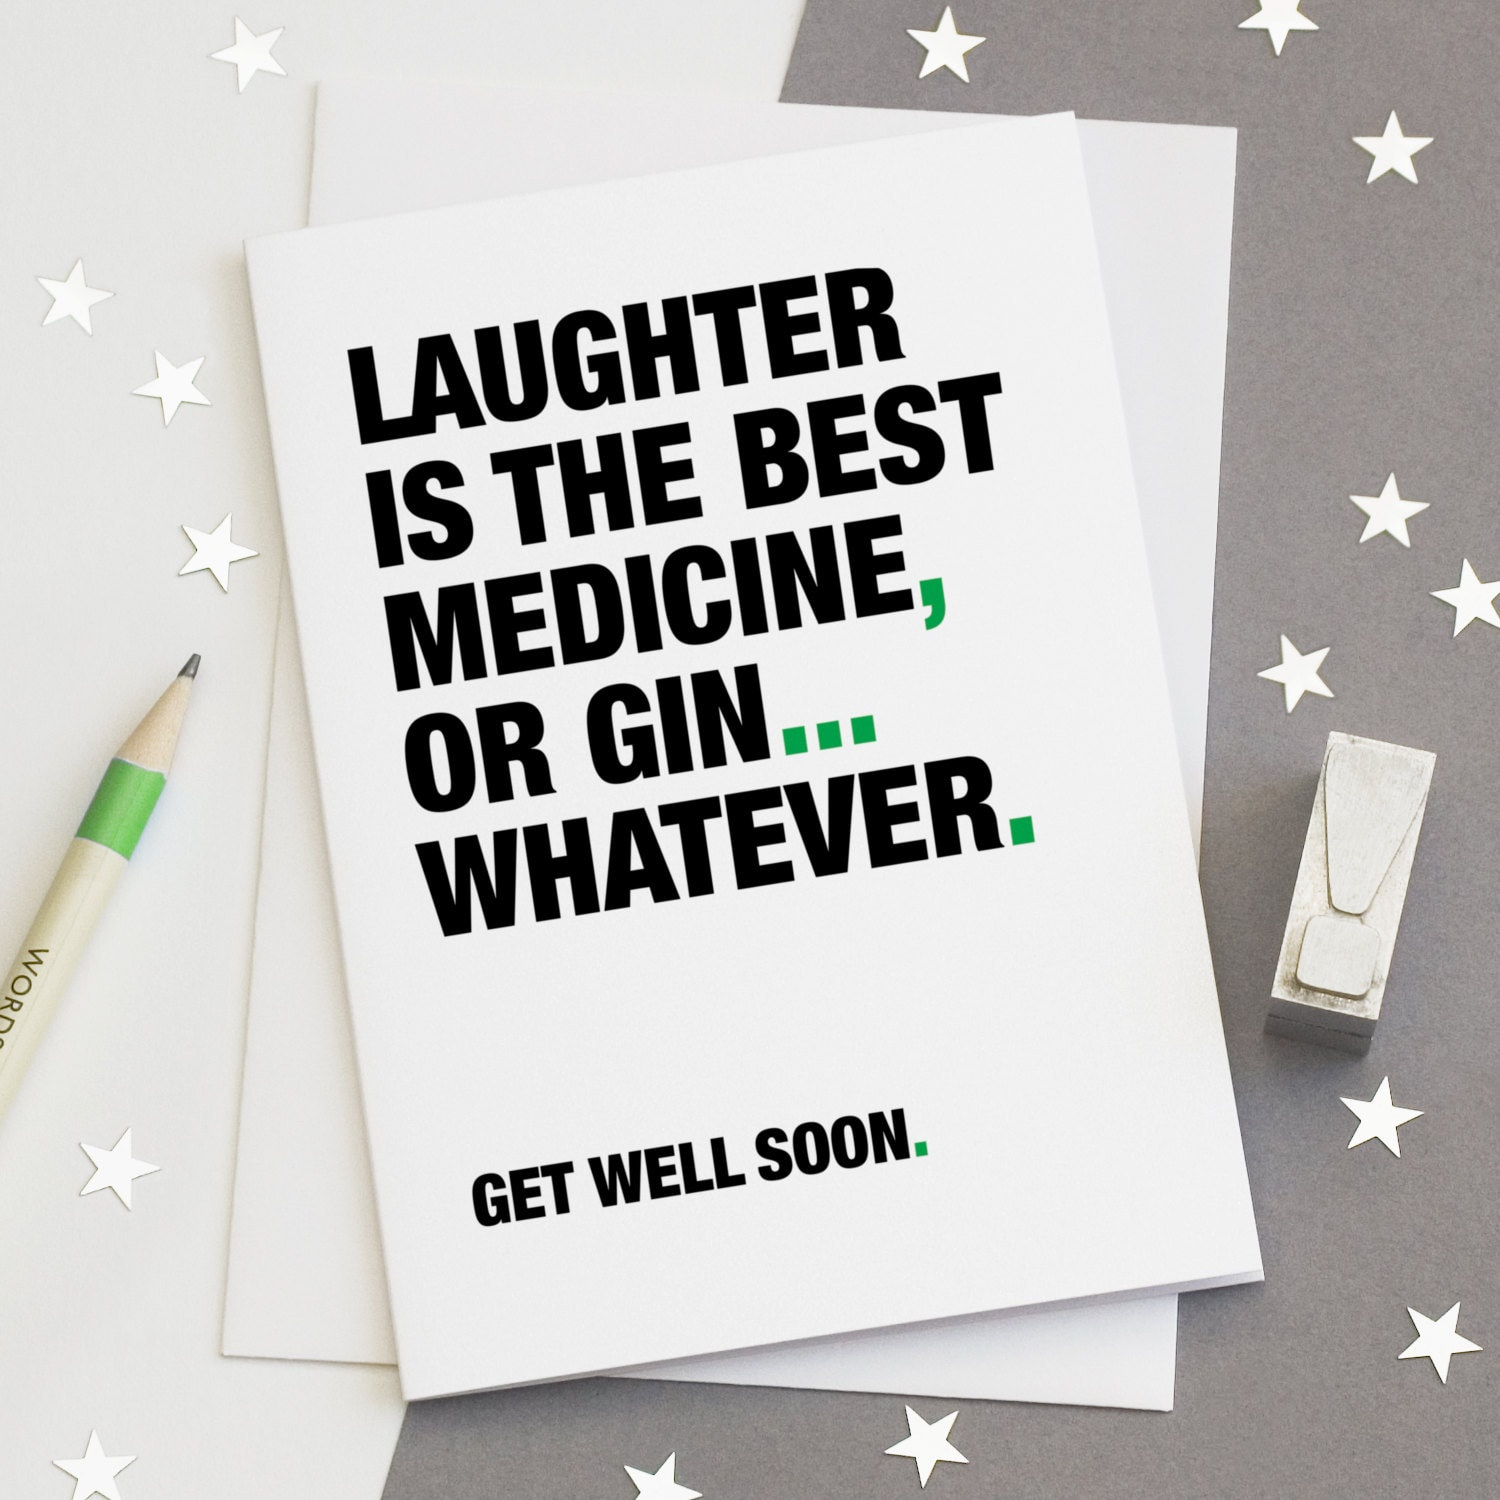 Get Better Quotes Funny: Get Well Soon Card Funny Get Well Card Gin Quotes Gin